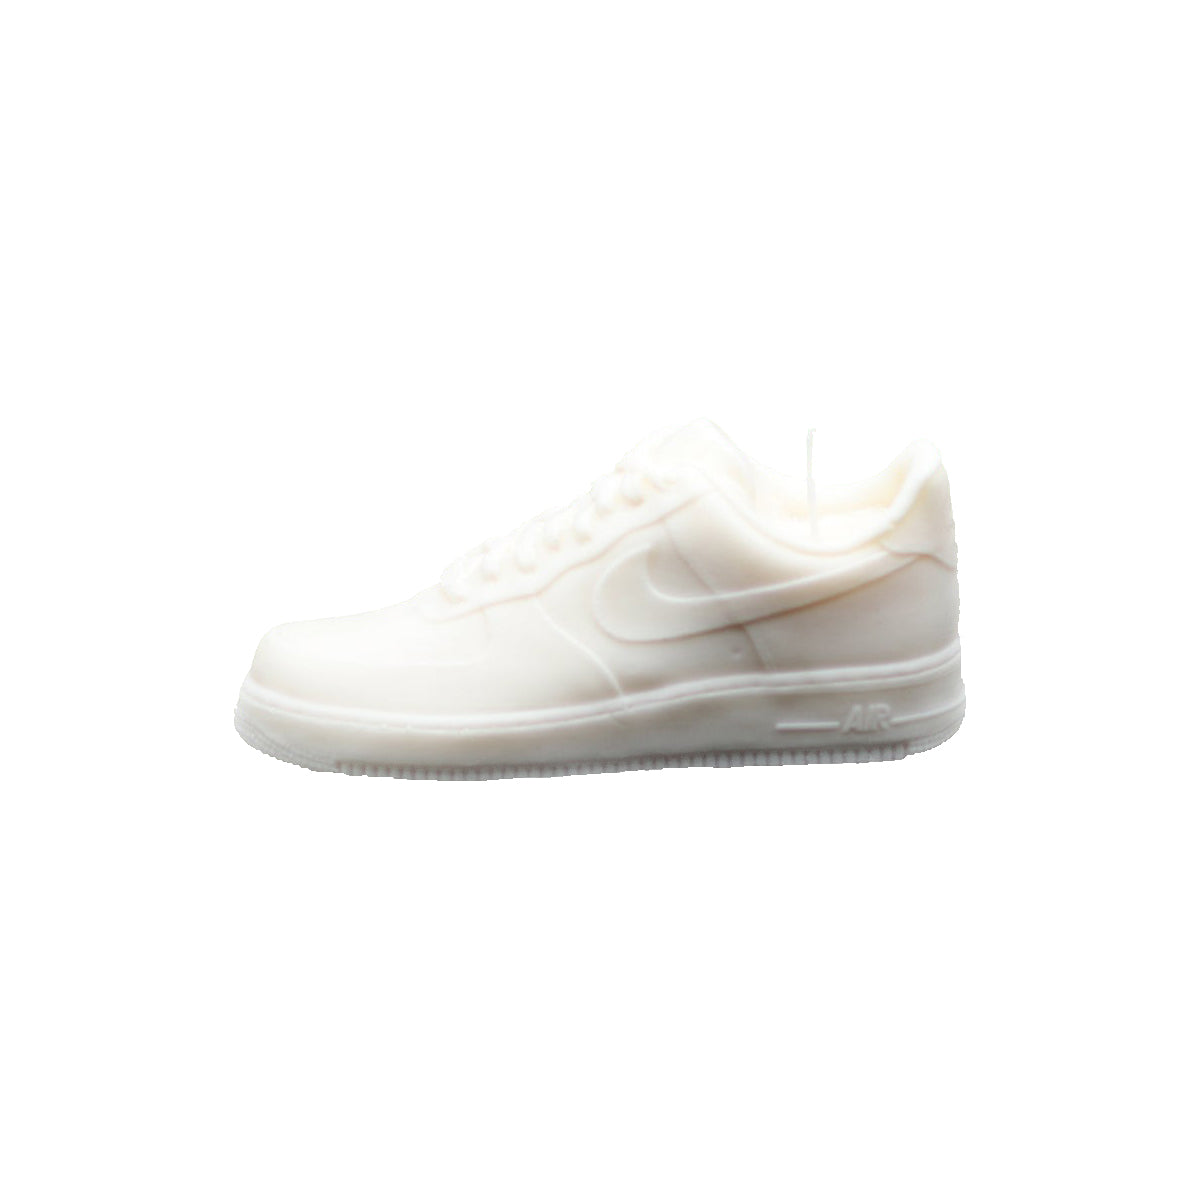 Bougie Nike Air Force 1 Low Triple White Candlekicks